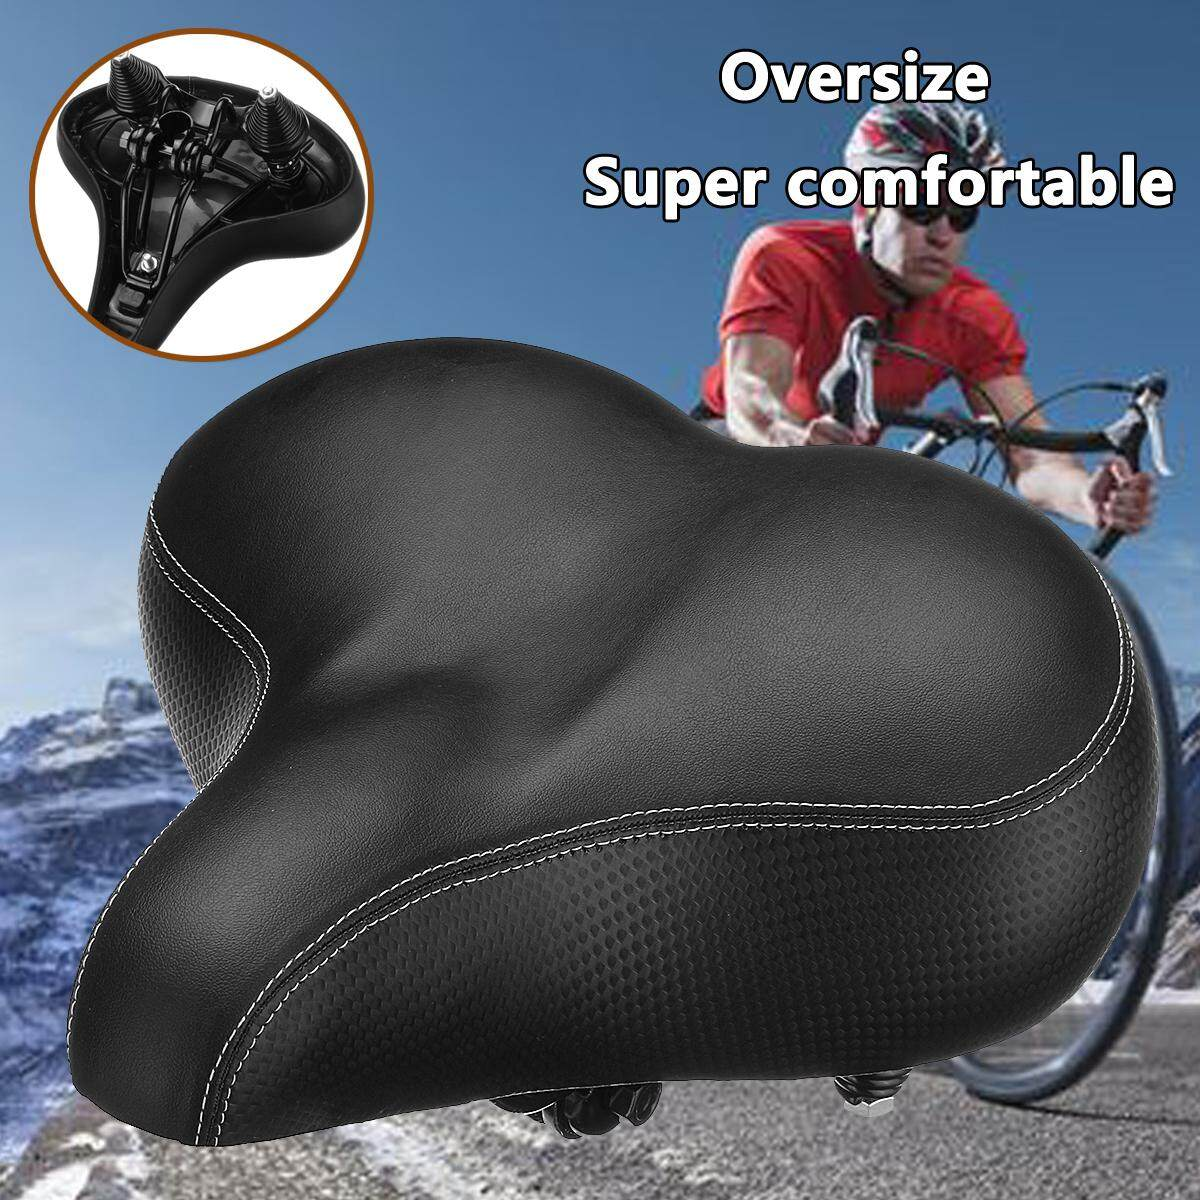 Bike Saddle Covers Buy At Best Price In Rockbros Bicycle Cover Silicone Gel Malaysia